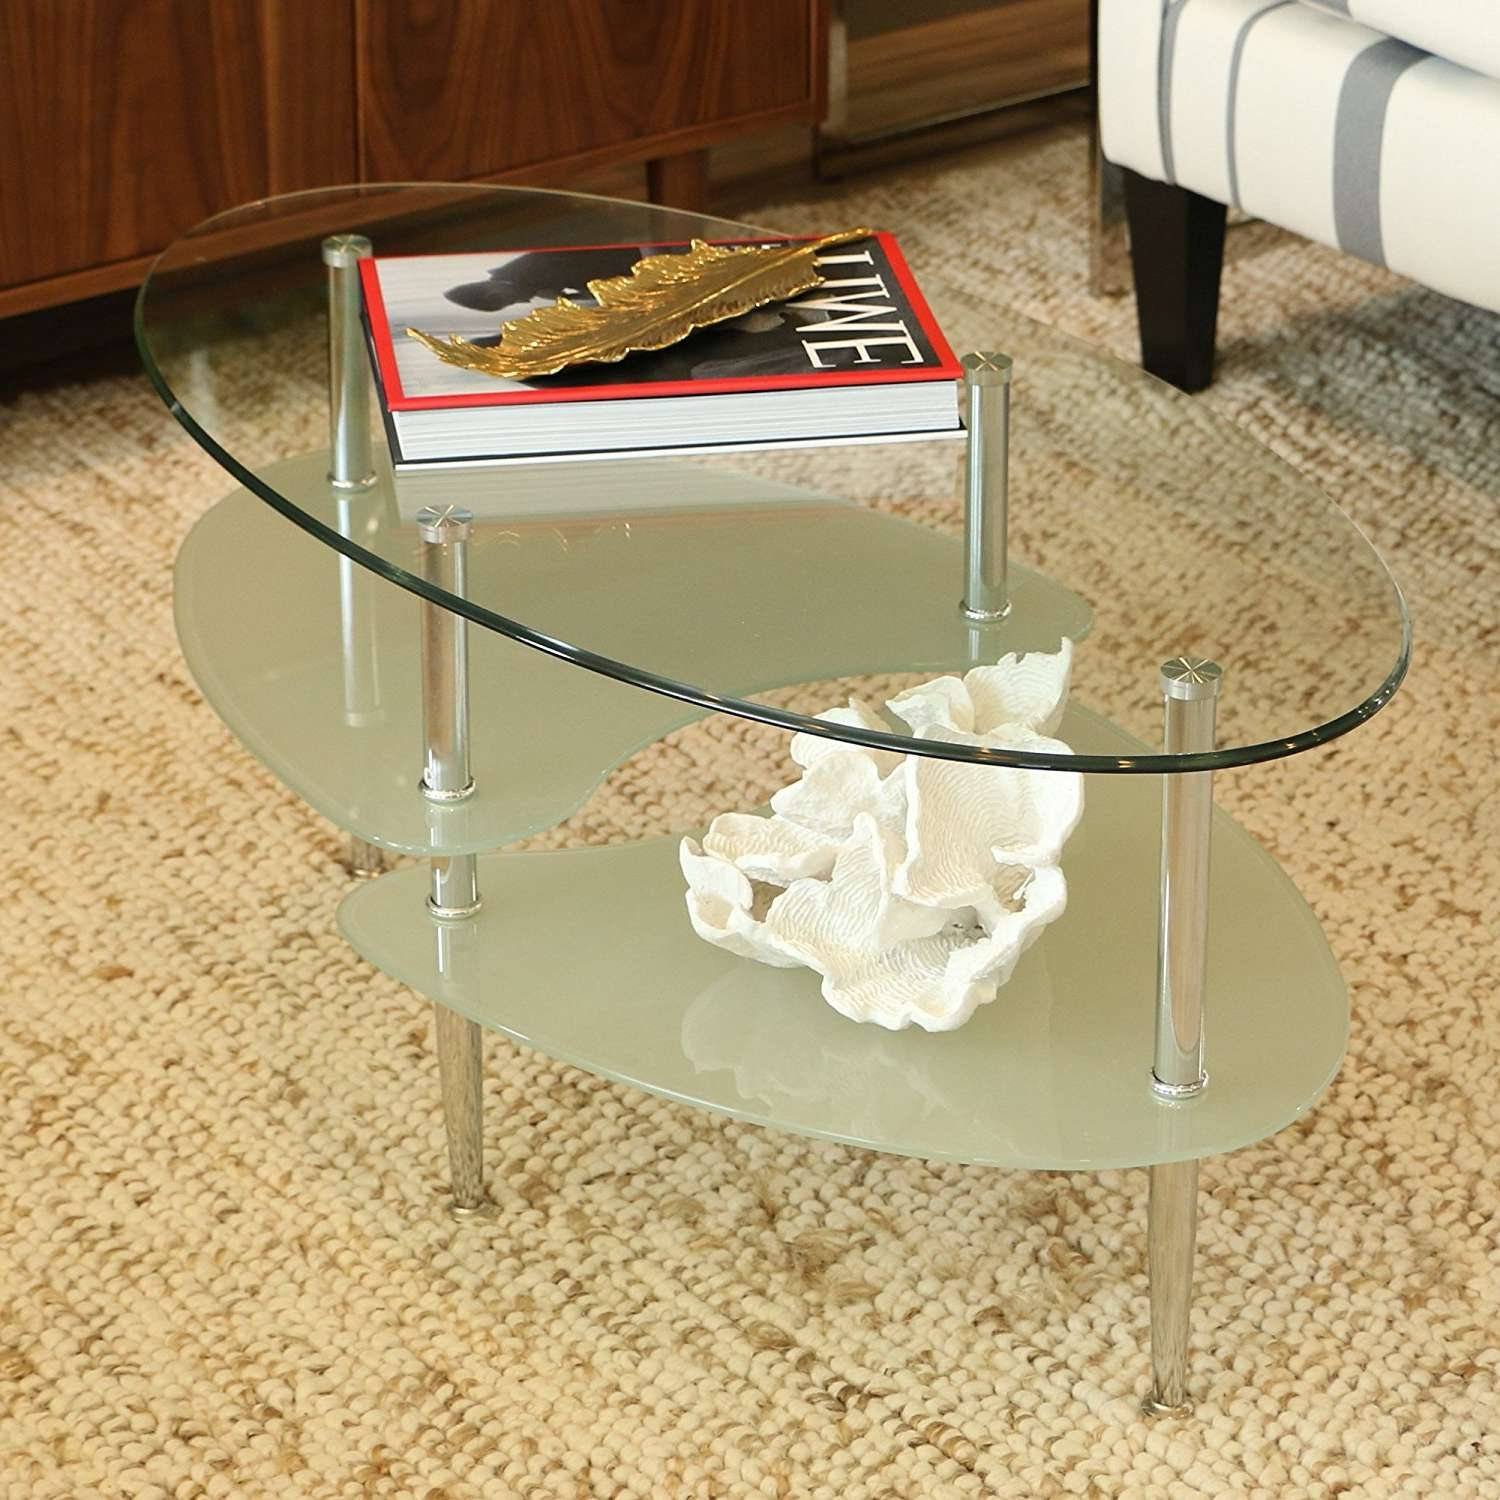 Oval Glass Coffee Table Contemporary Also Oval Glass Coffee Table Intended For Popular Metal Oval Coffee Tables (Gallery 16 of 20)